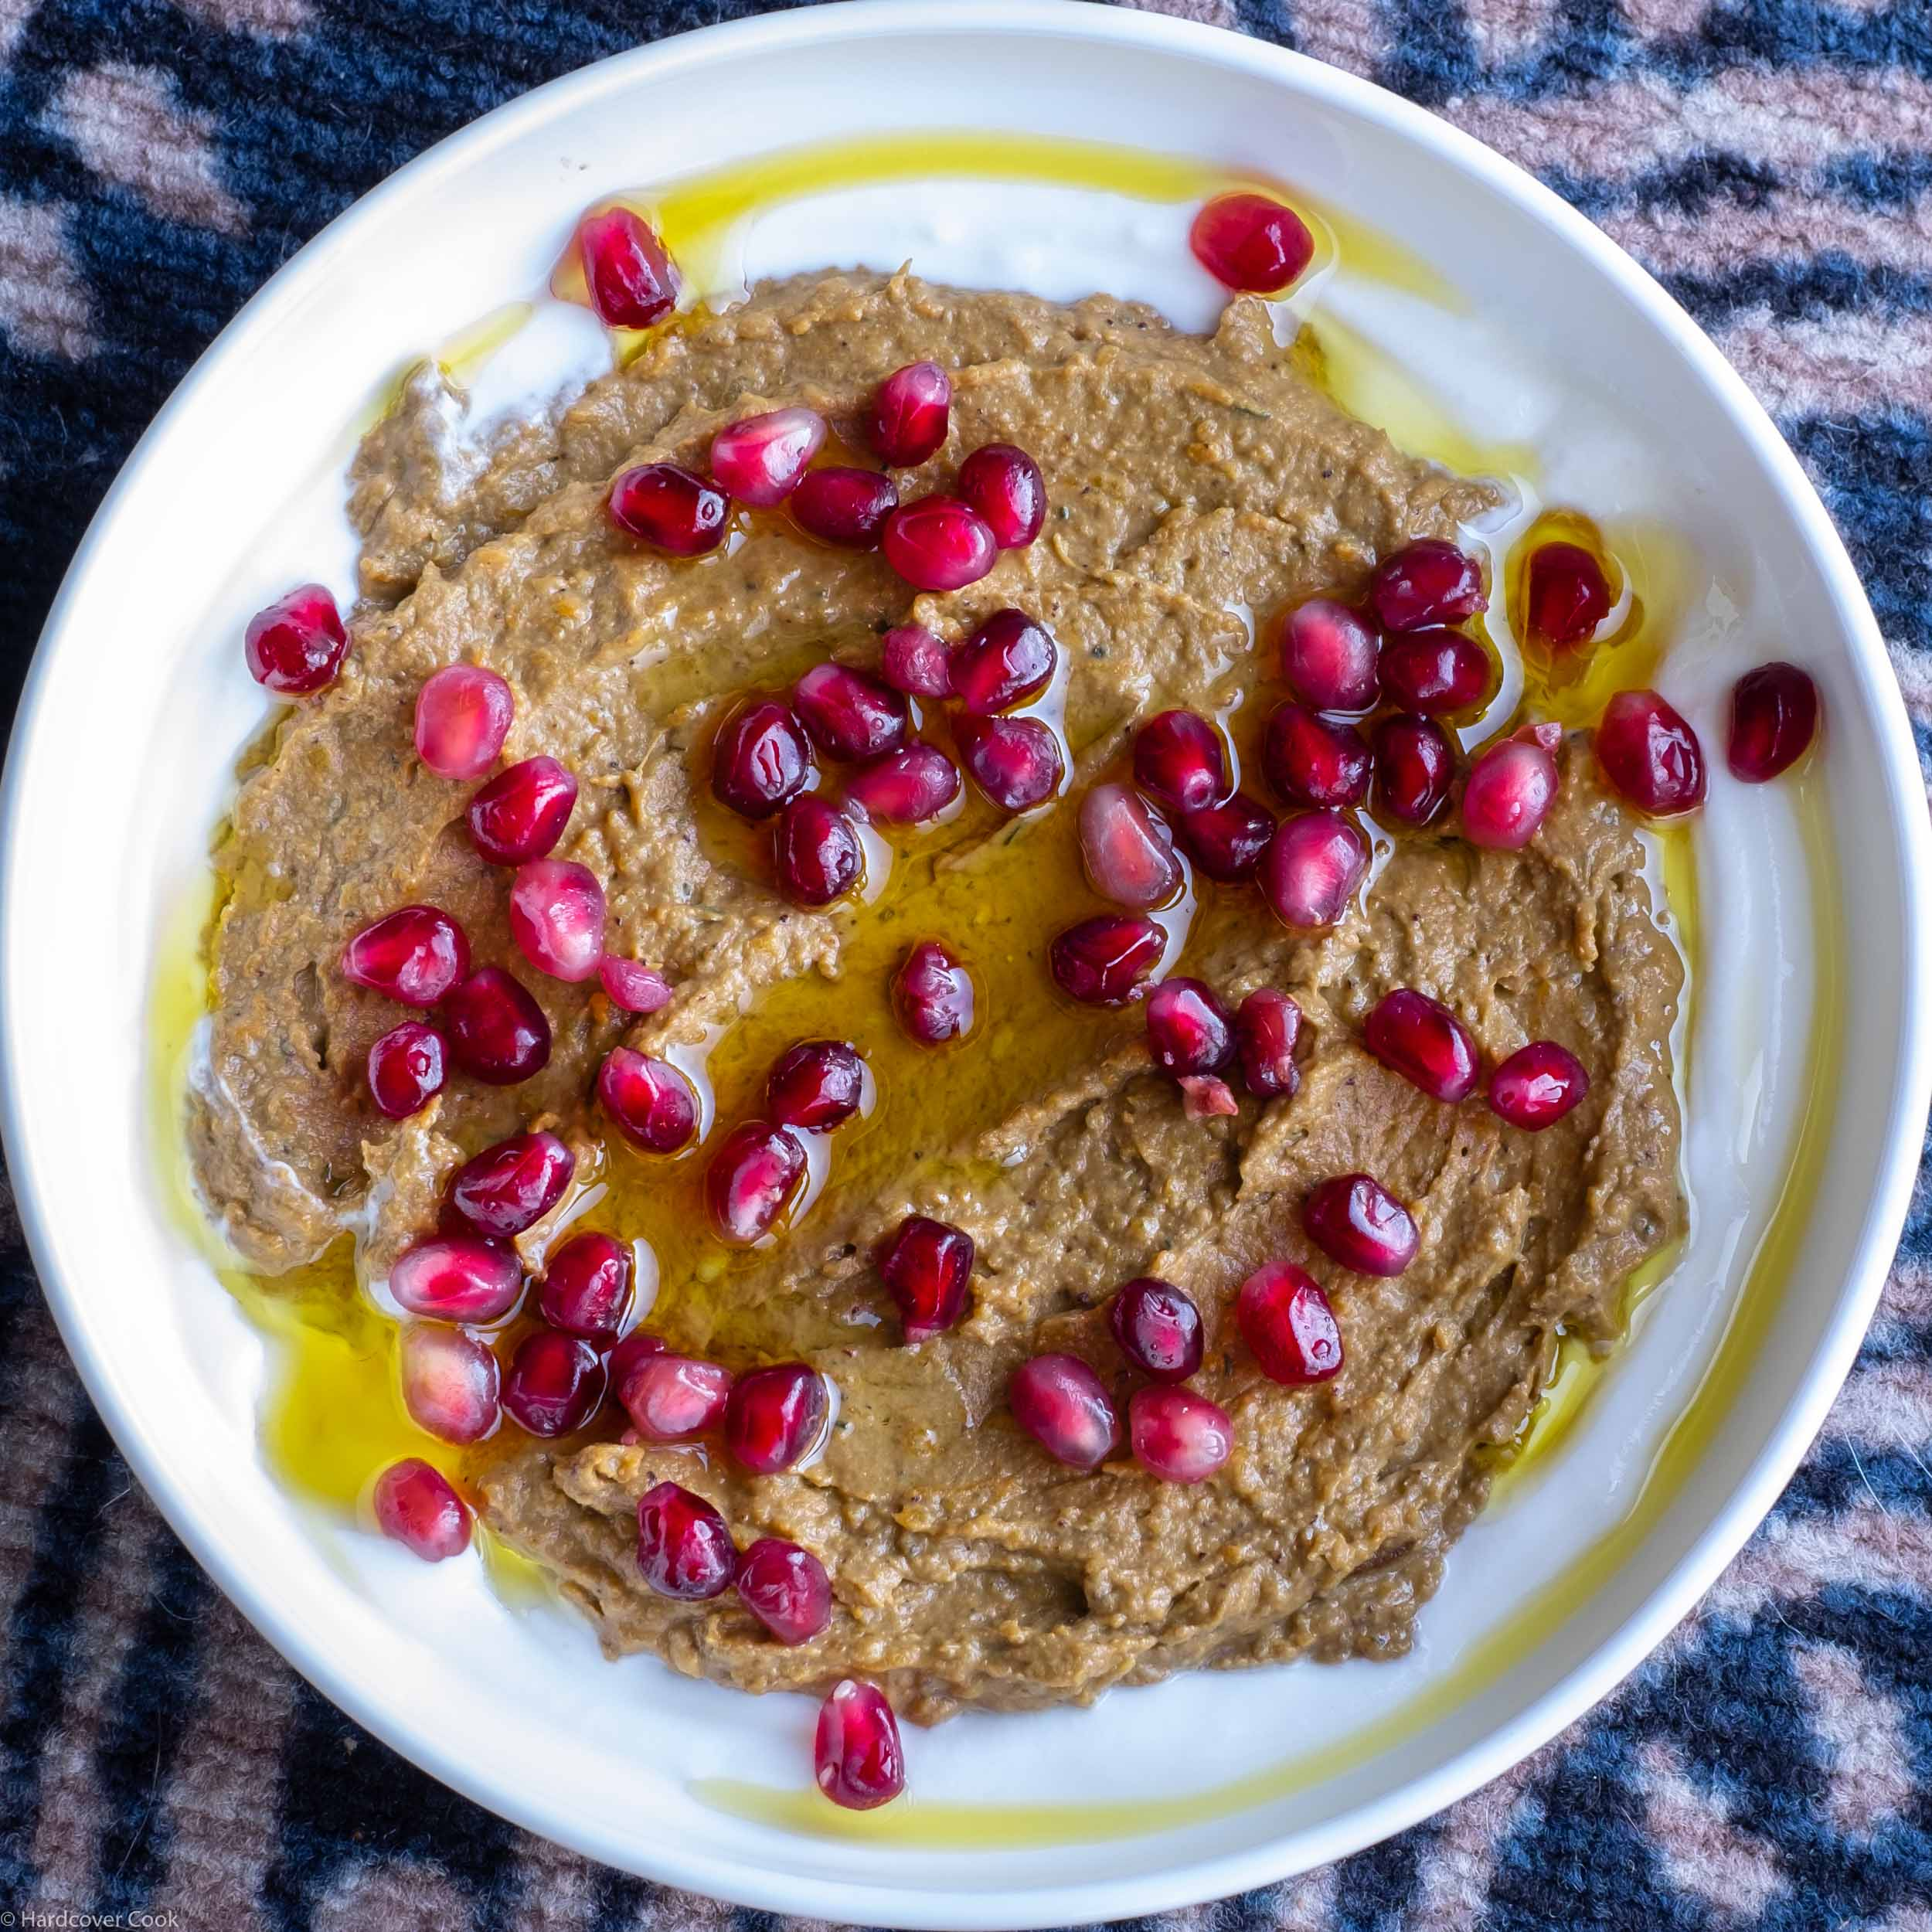 Roasted Squash Hummus from Everyday Dorie